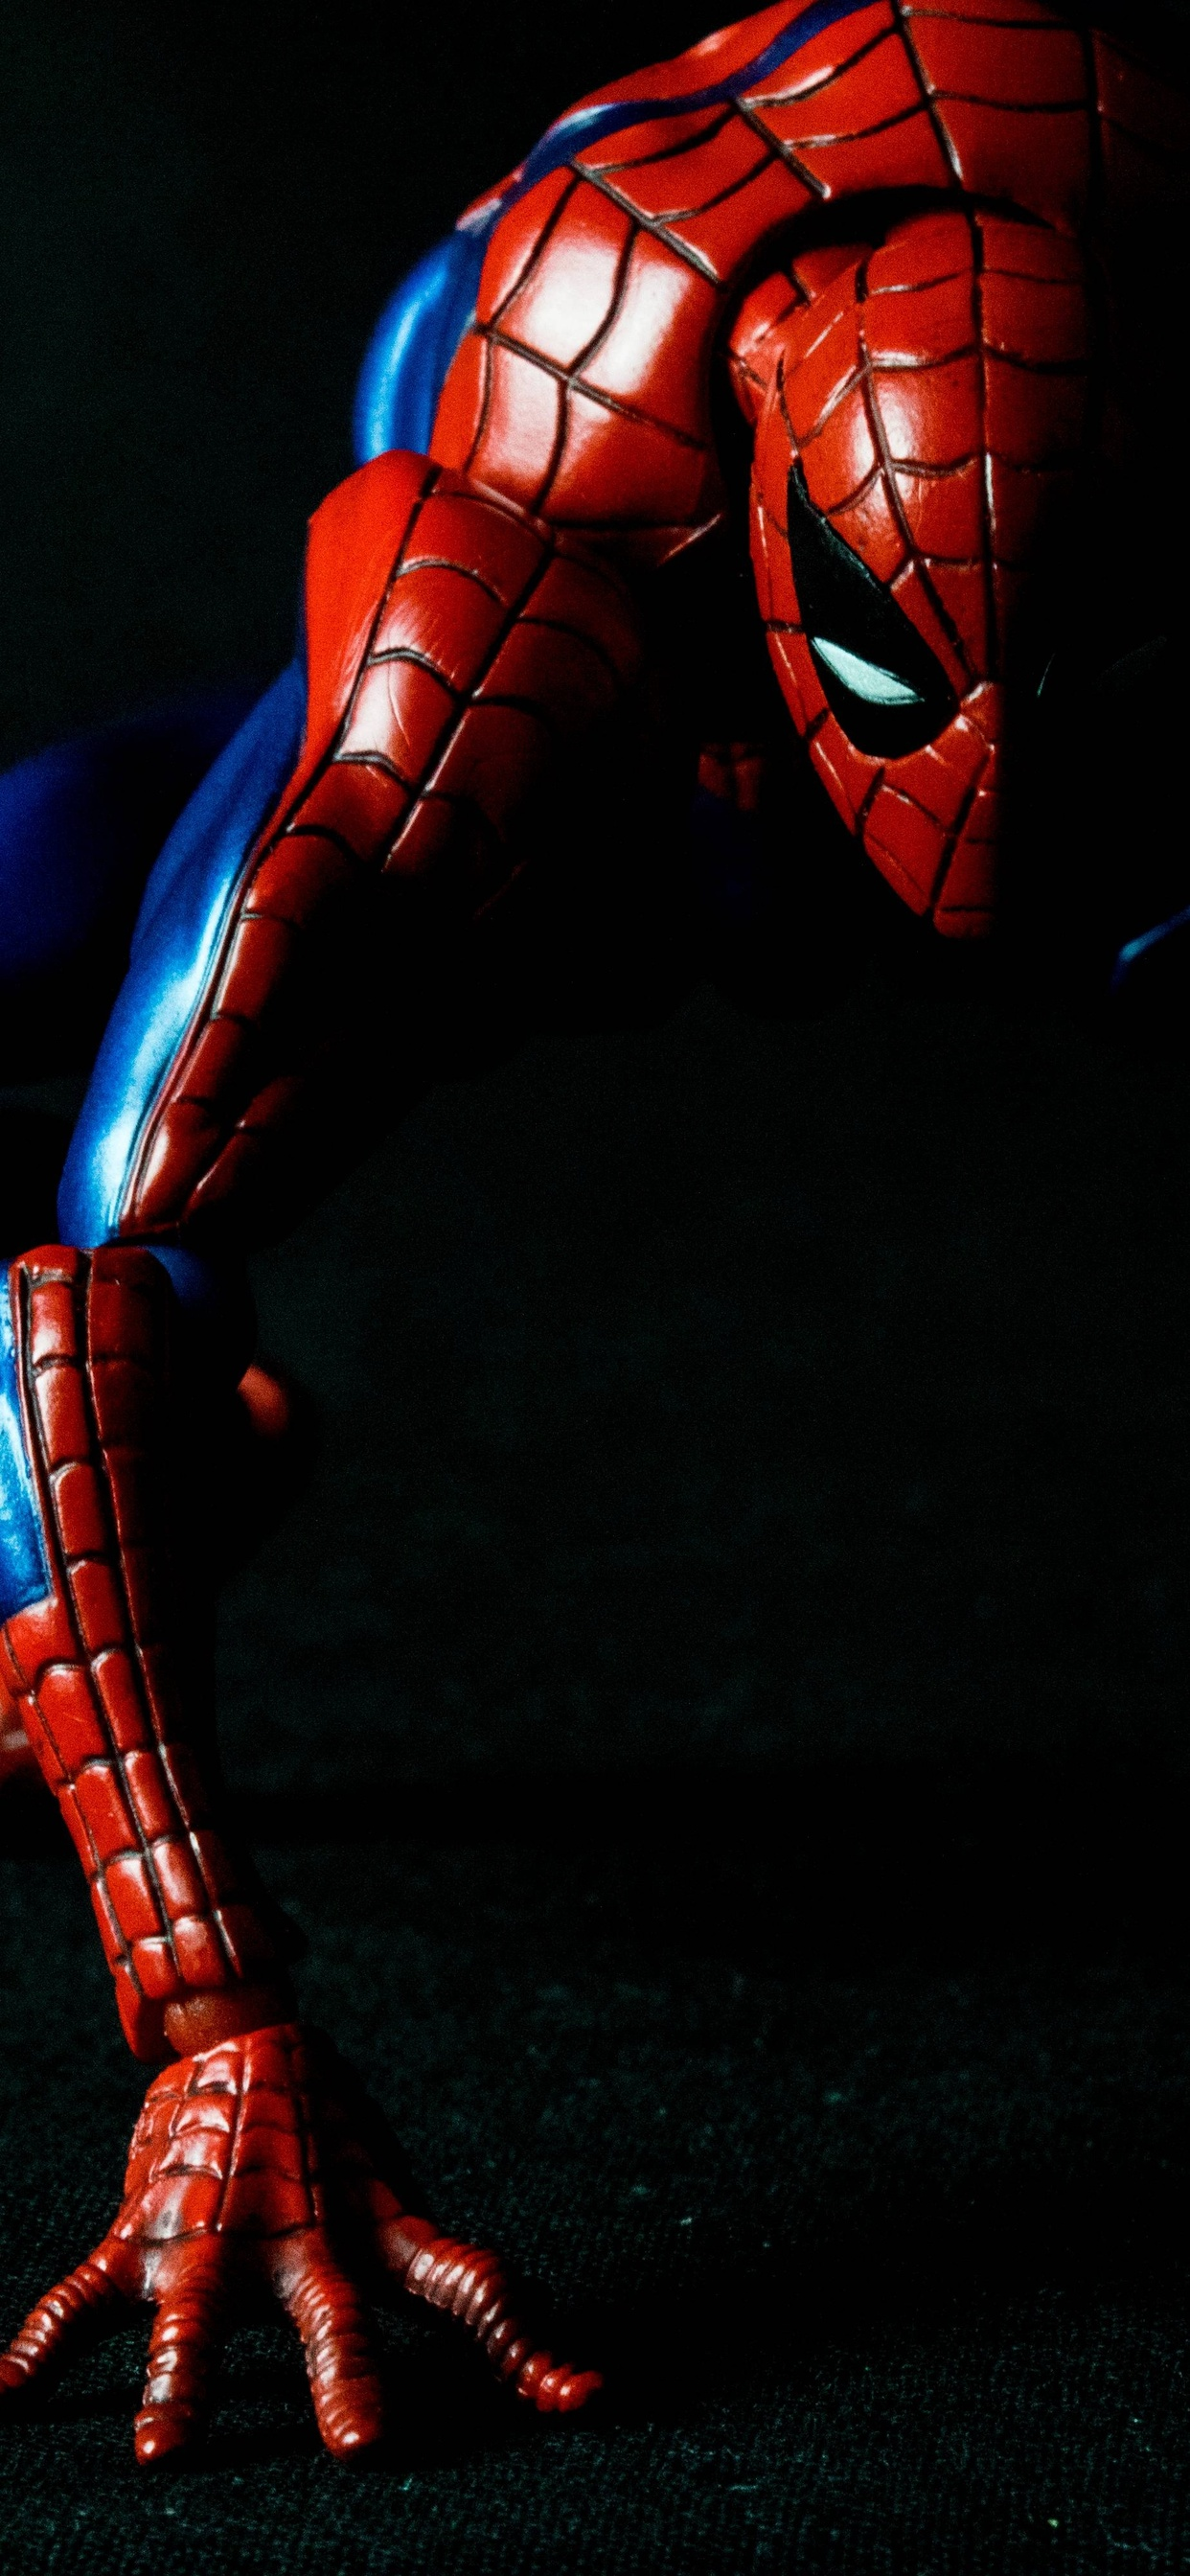 spiderman-web-of-shadows-ln.jpg